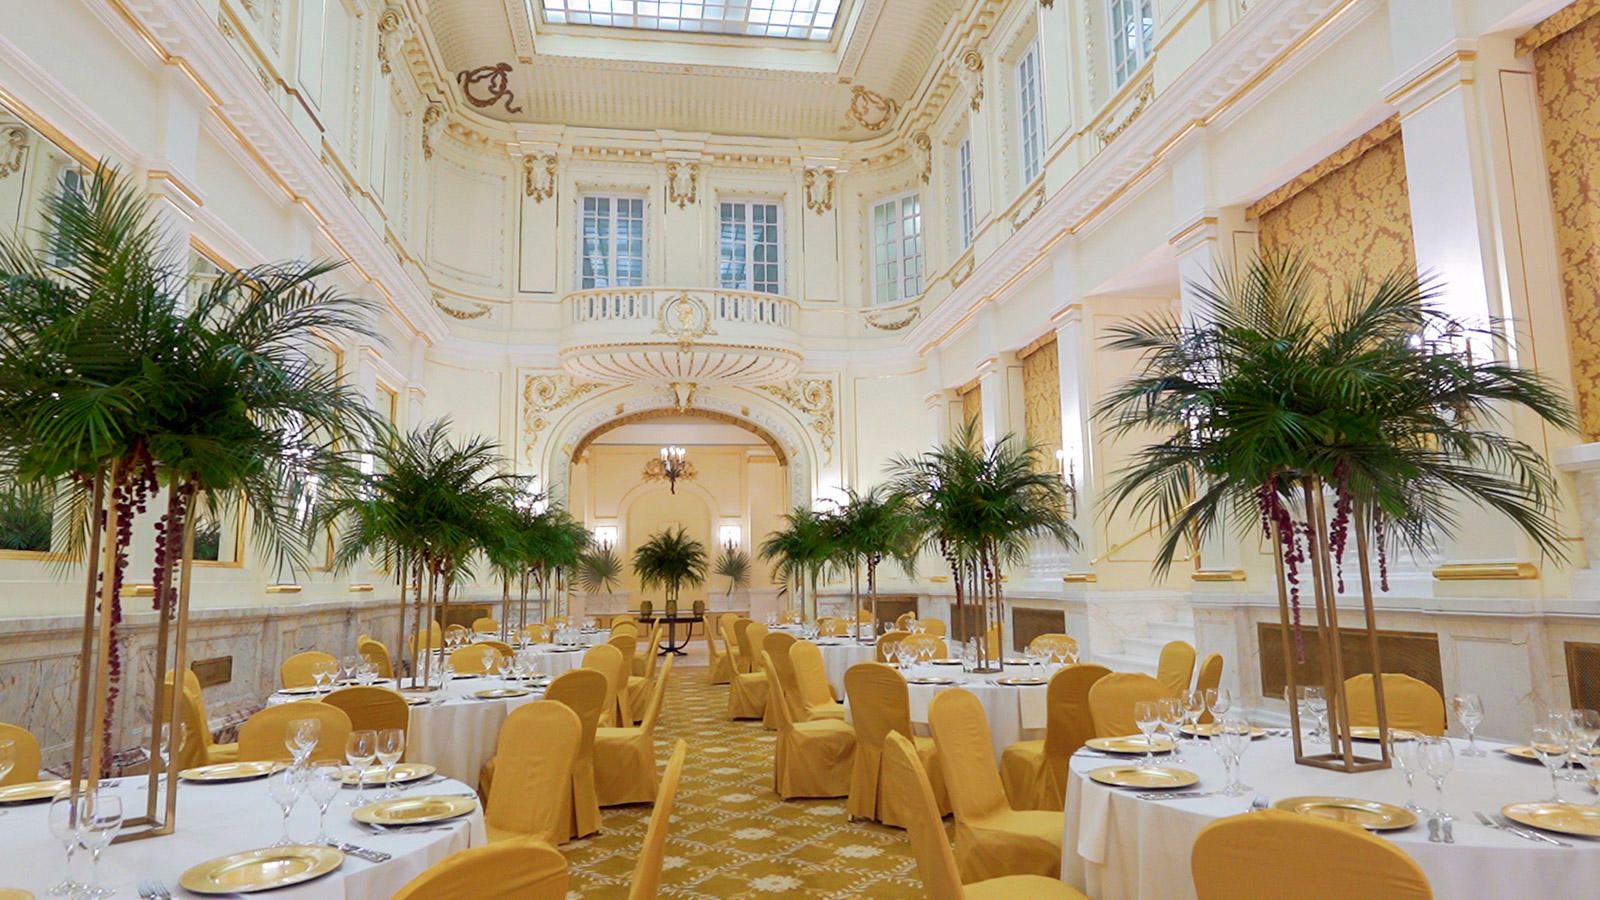 Banquet Hall at Polonia Palace Hotel, Warsaw